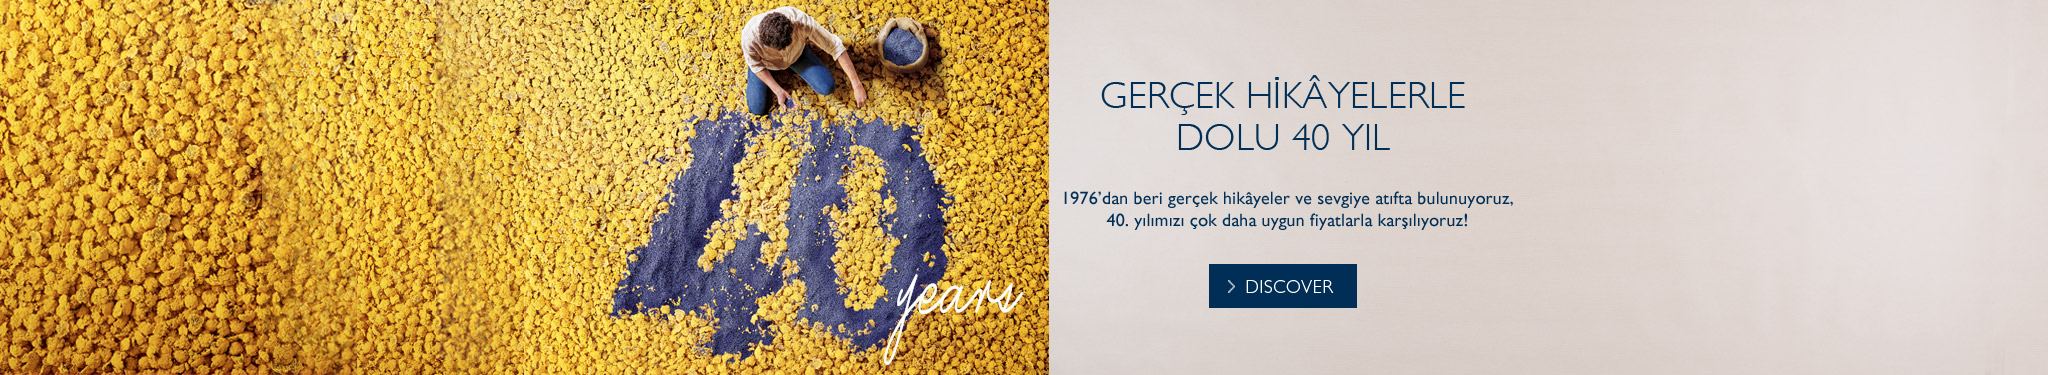 Countless passions  around true beauty, inspired by nature. We welcome you with European prices in our 40th year.